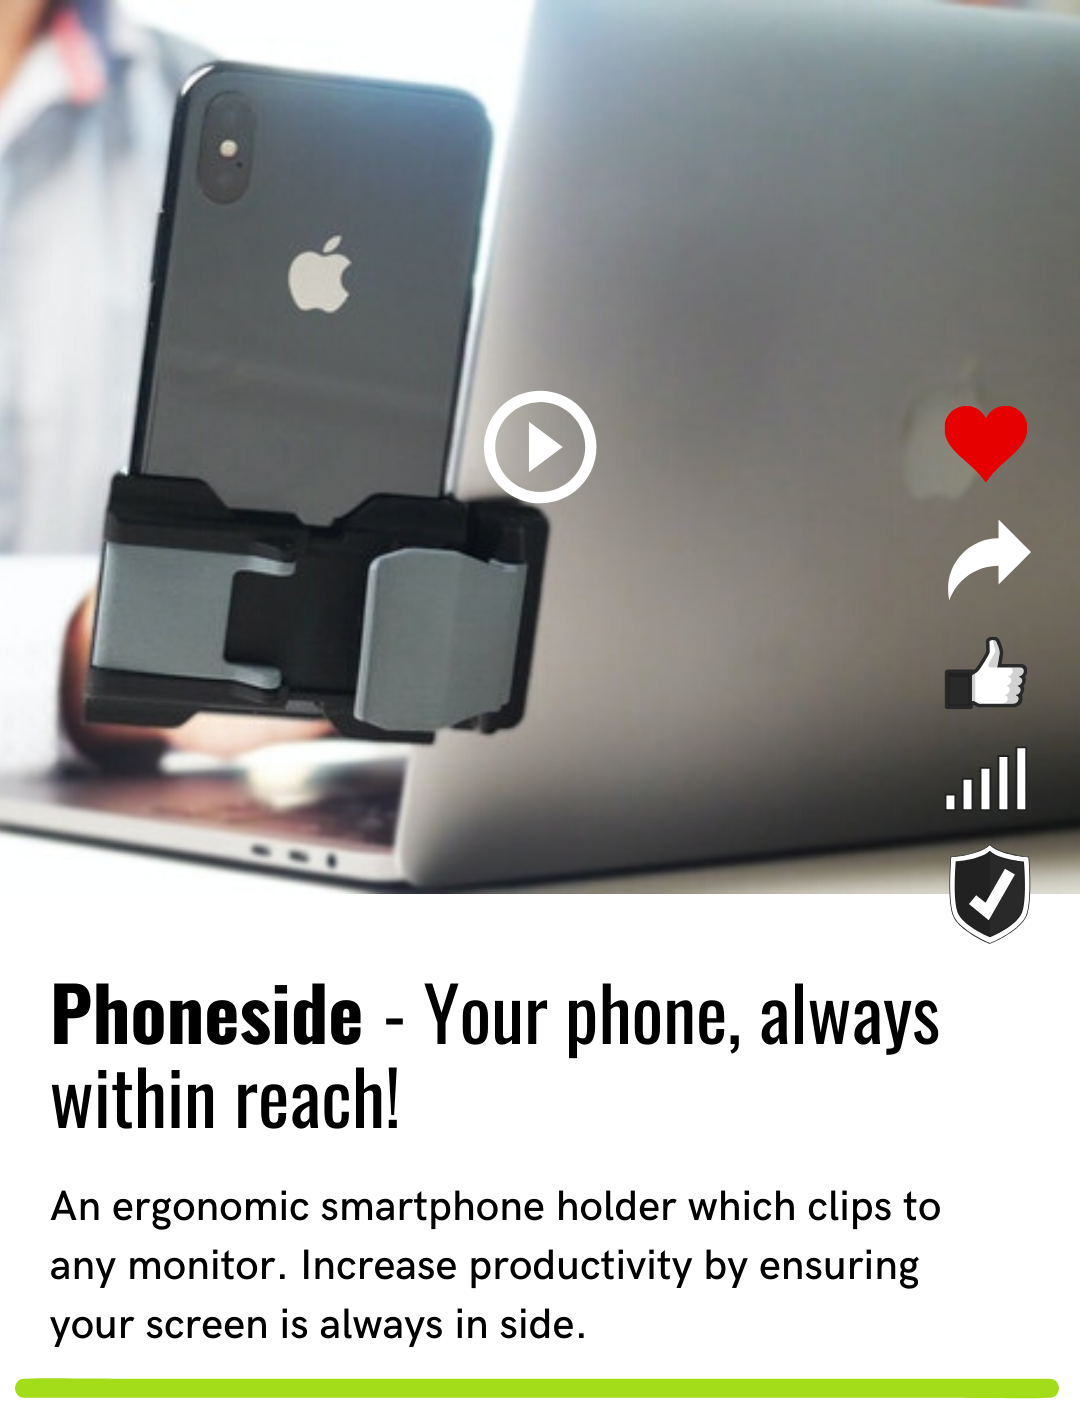 Phoneside - Your phone, always within reach!